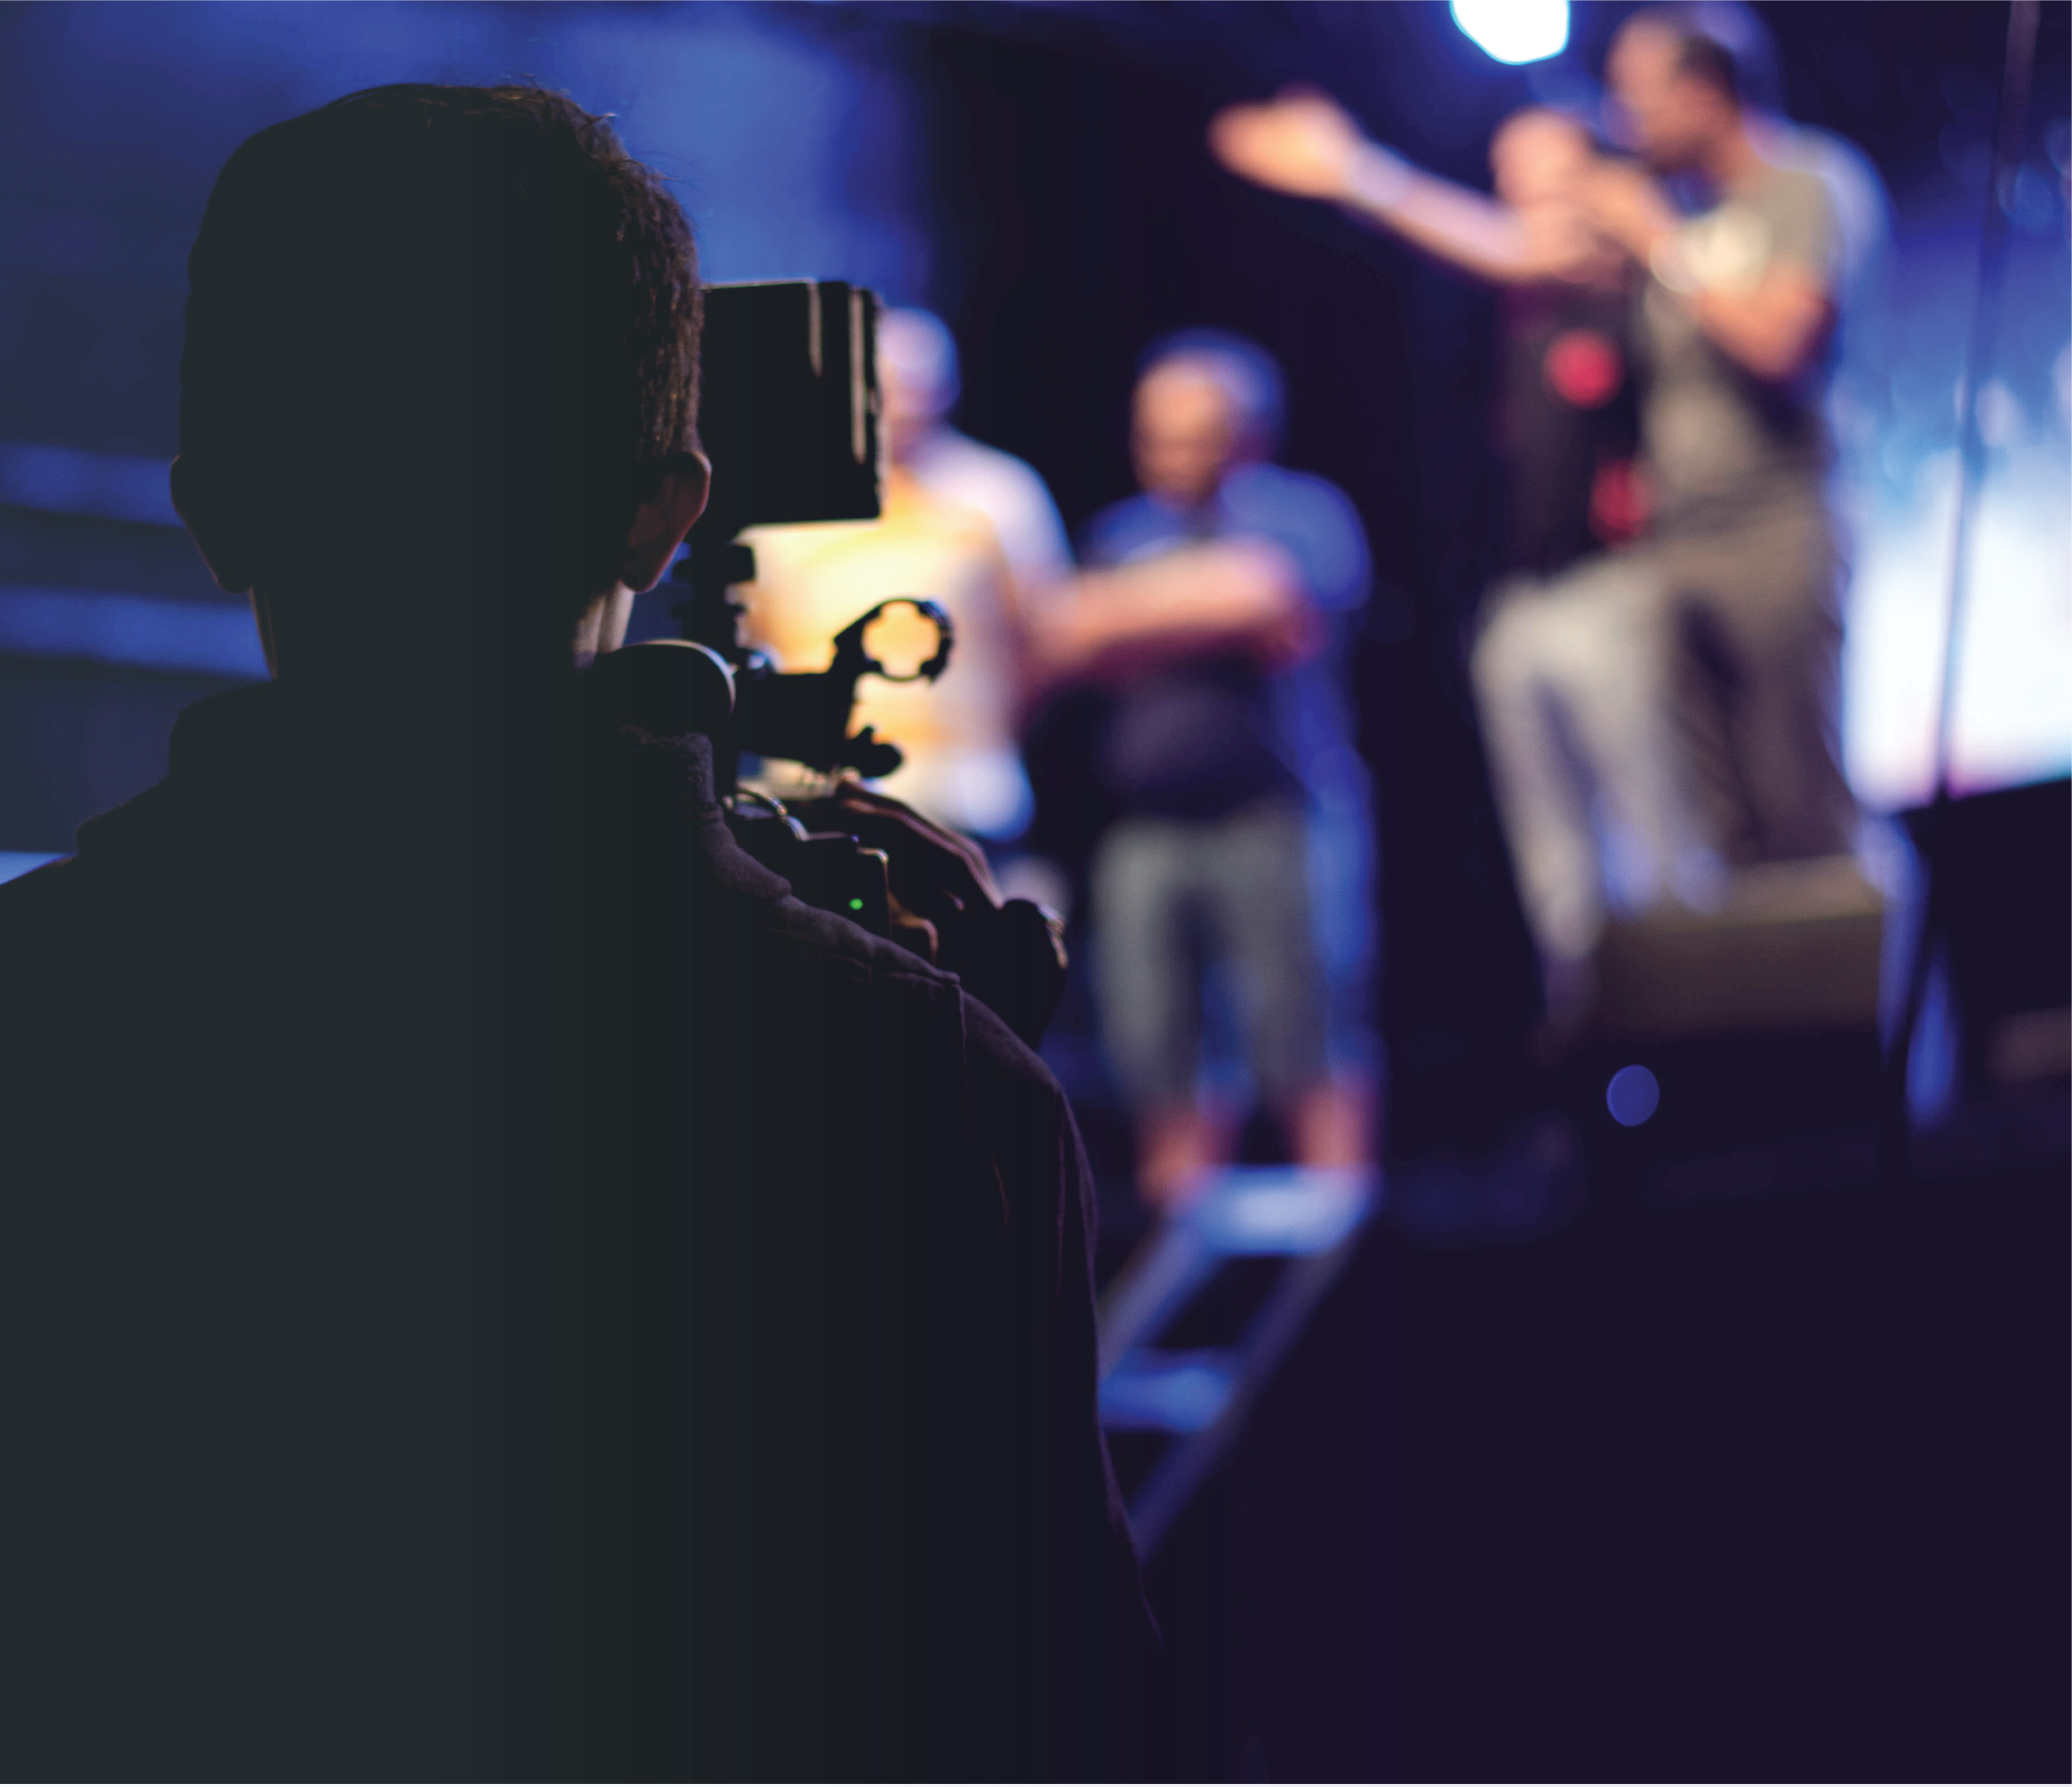 one cameraman filming a group of four enthusiastic speakers on a stage in front of him